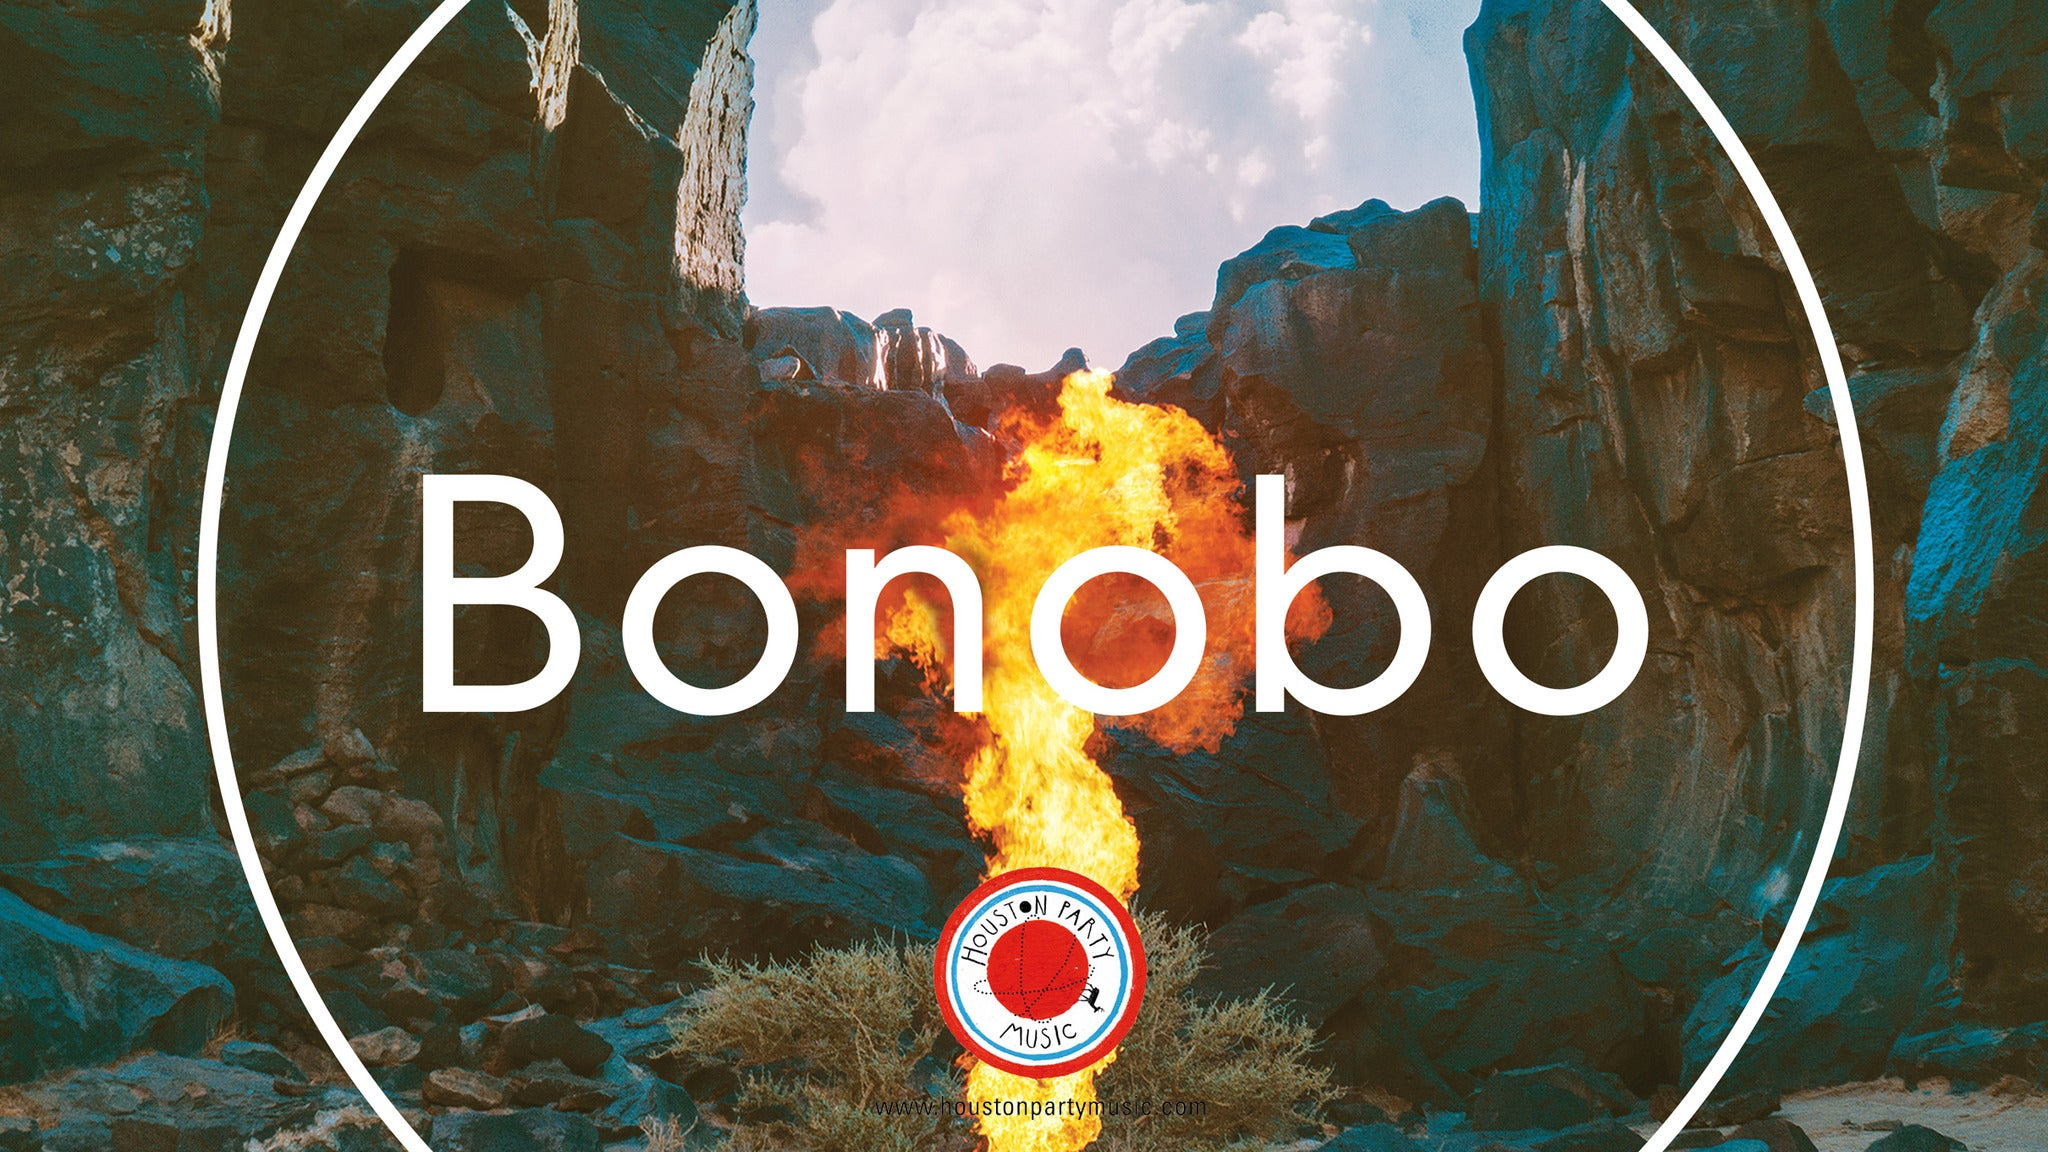 Bonobo at Nile Theater